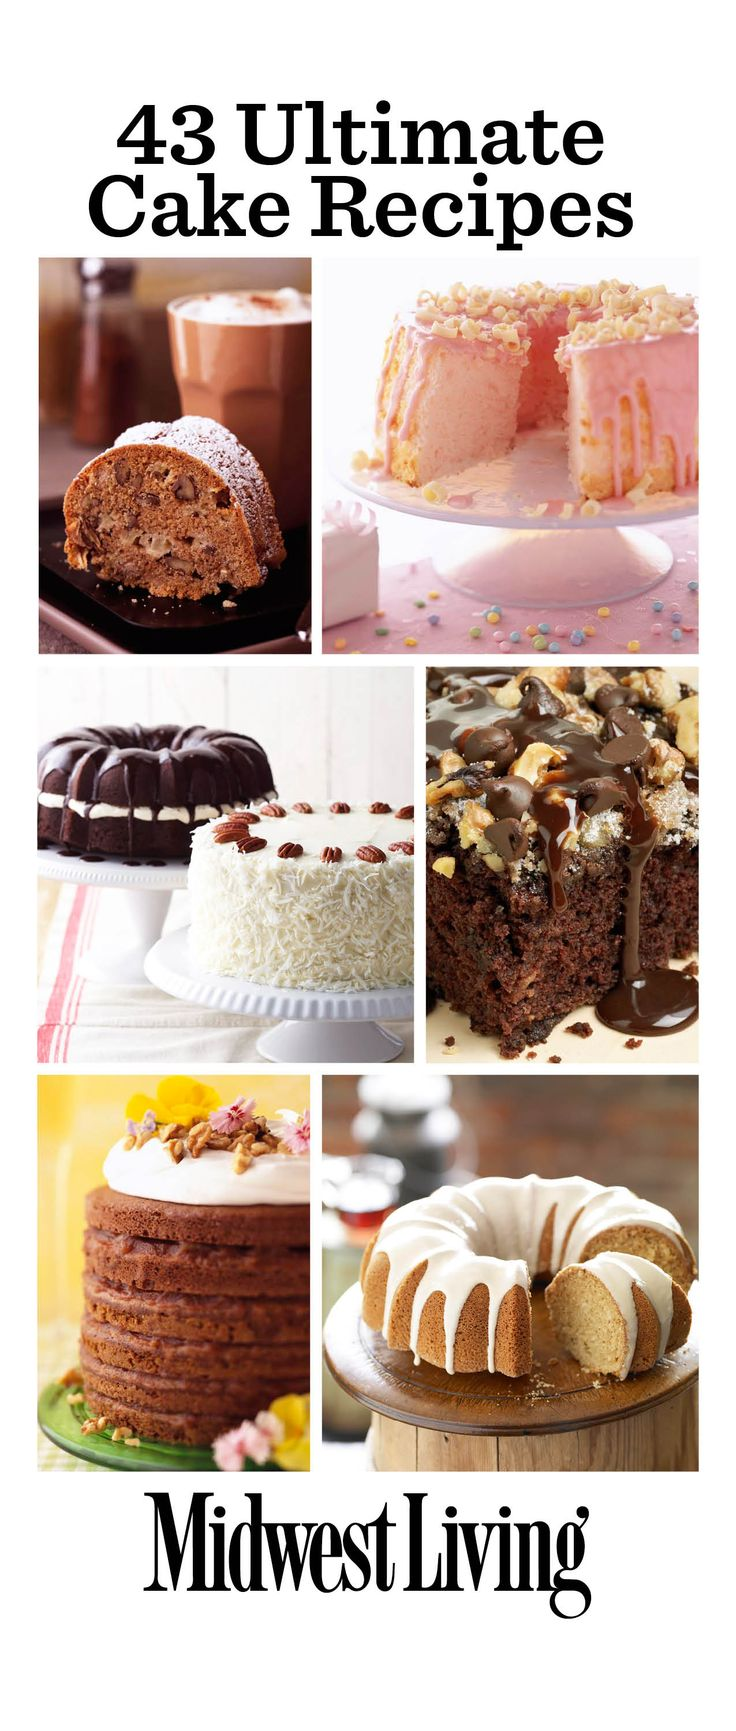 Our best cake recipes! http://www.midwestliving.com/food/desserts/favorite-cake-recipes/